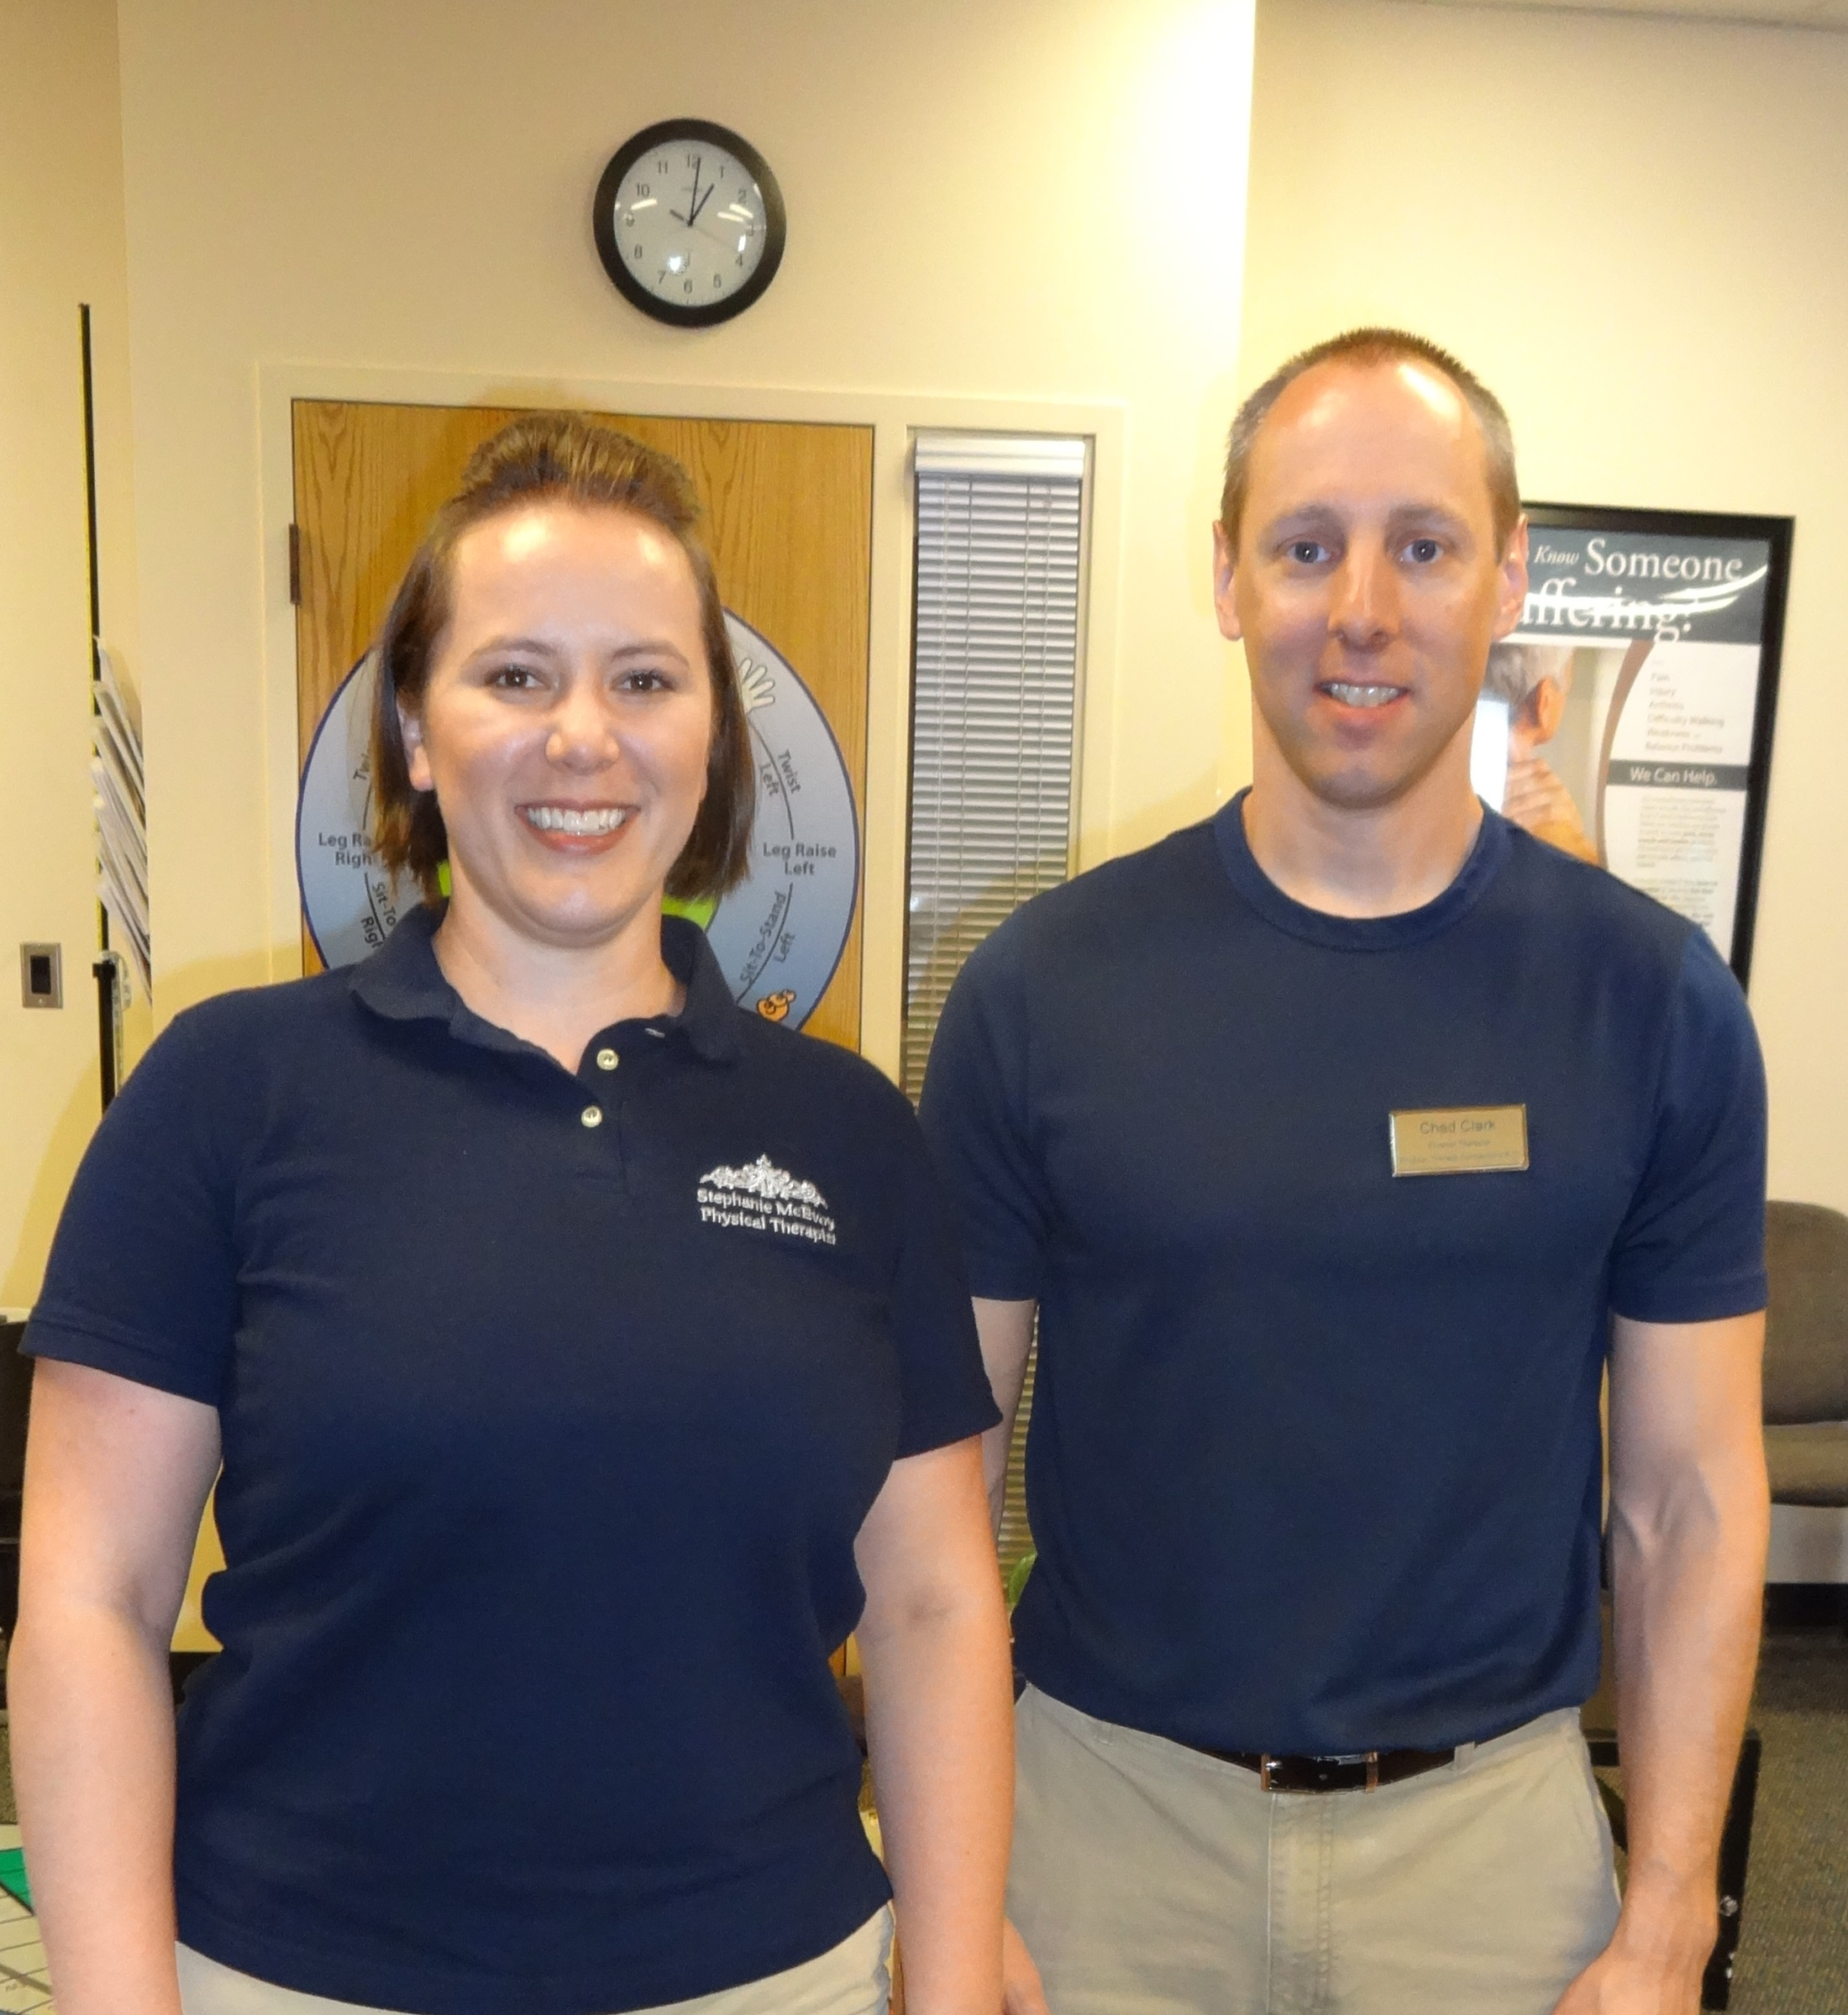 Sfma physical therapy in pueblo pt connections chad steph 1betcityfo Images